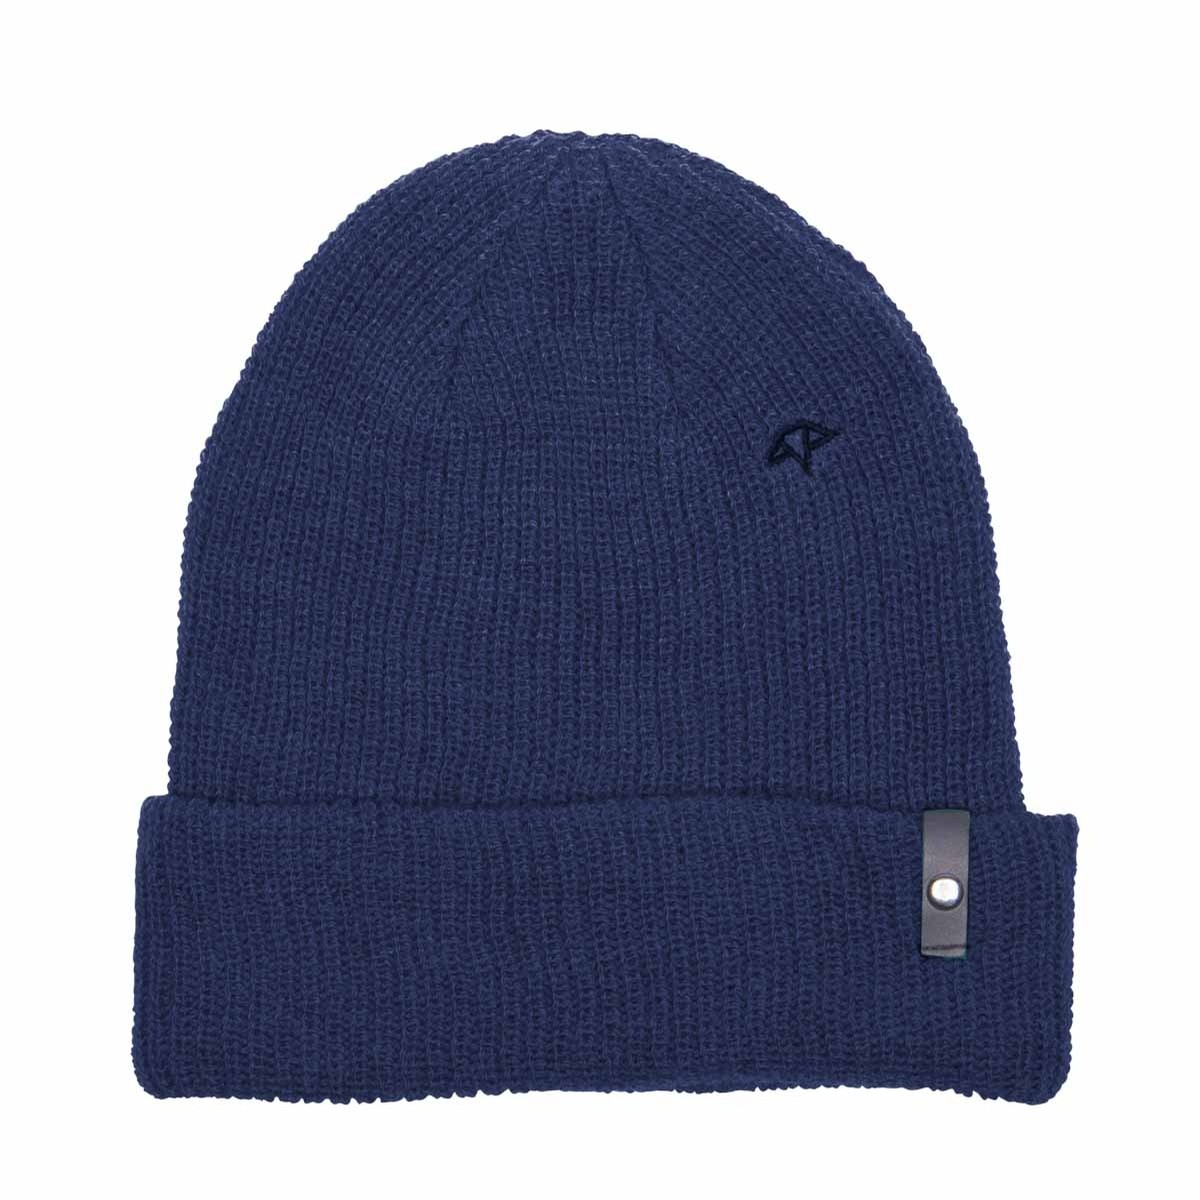 Clan Beanie (Navy Heather)